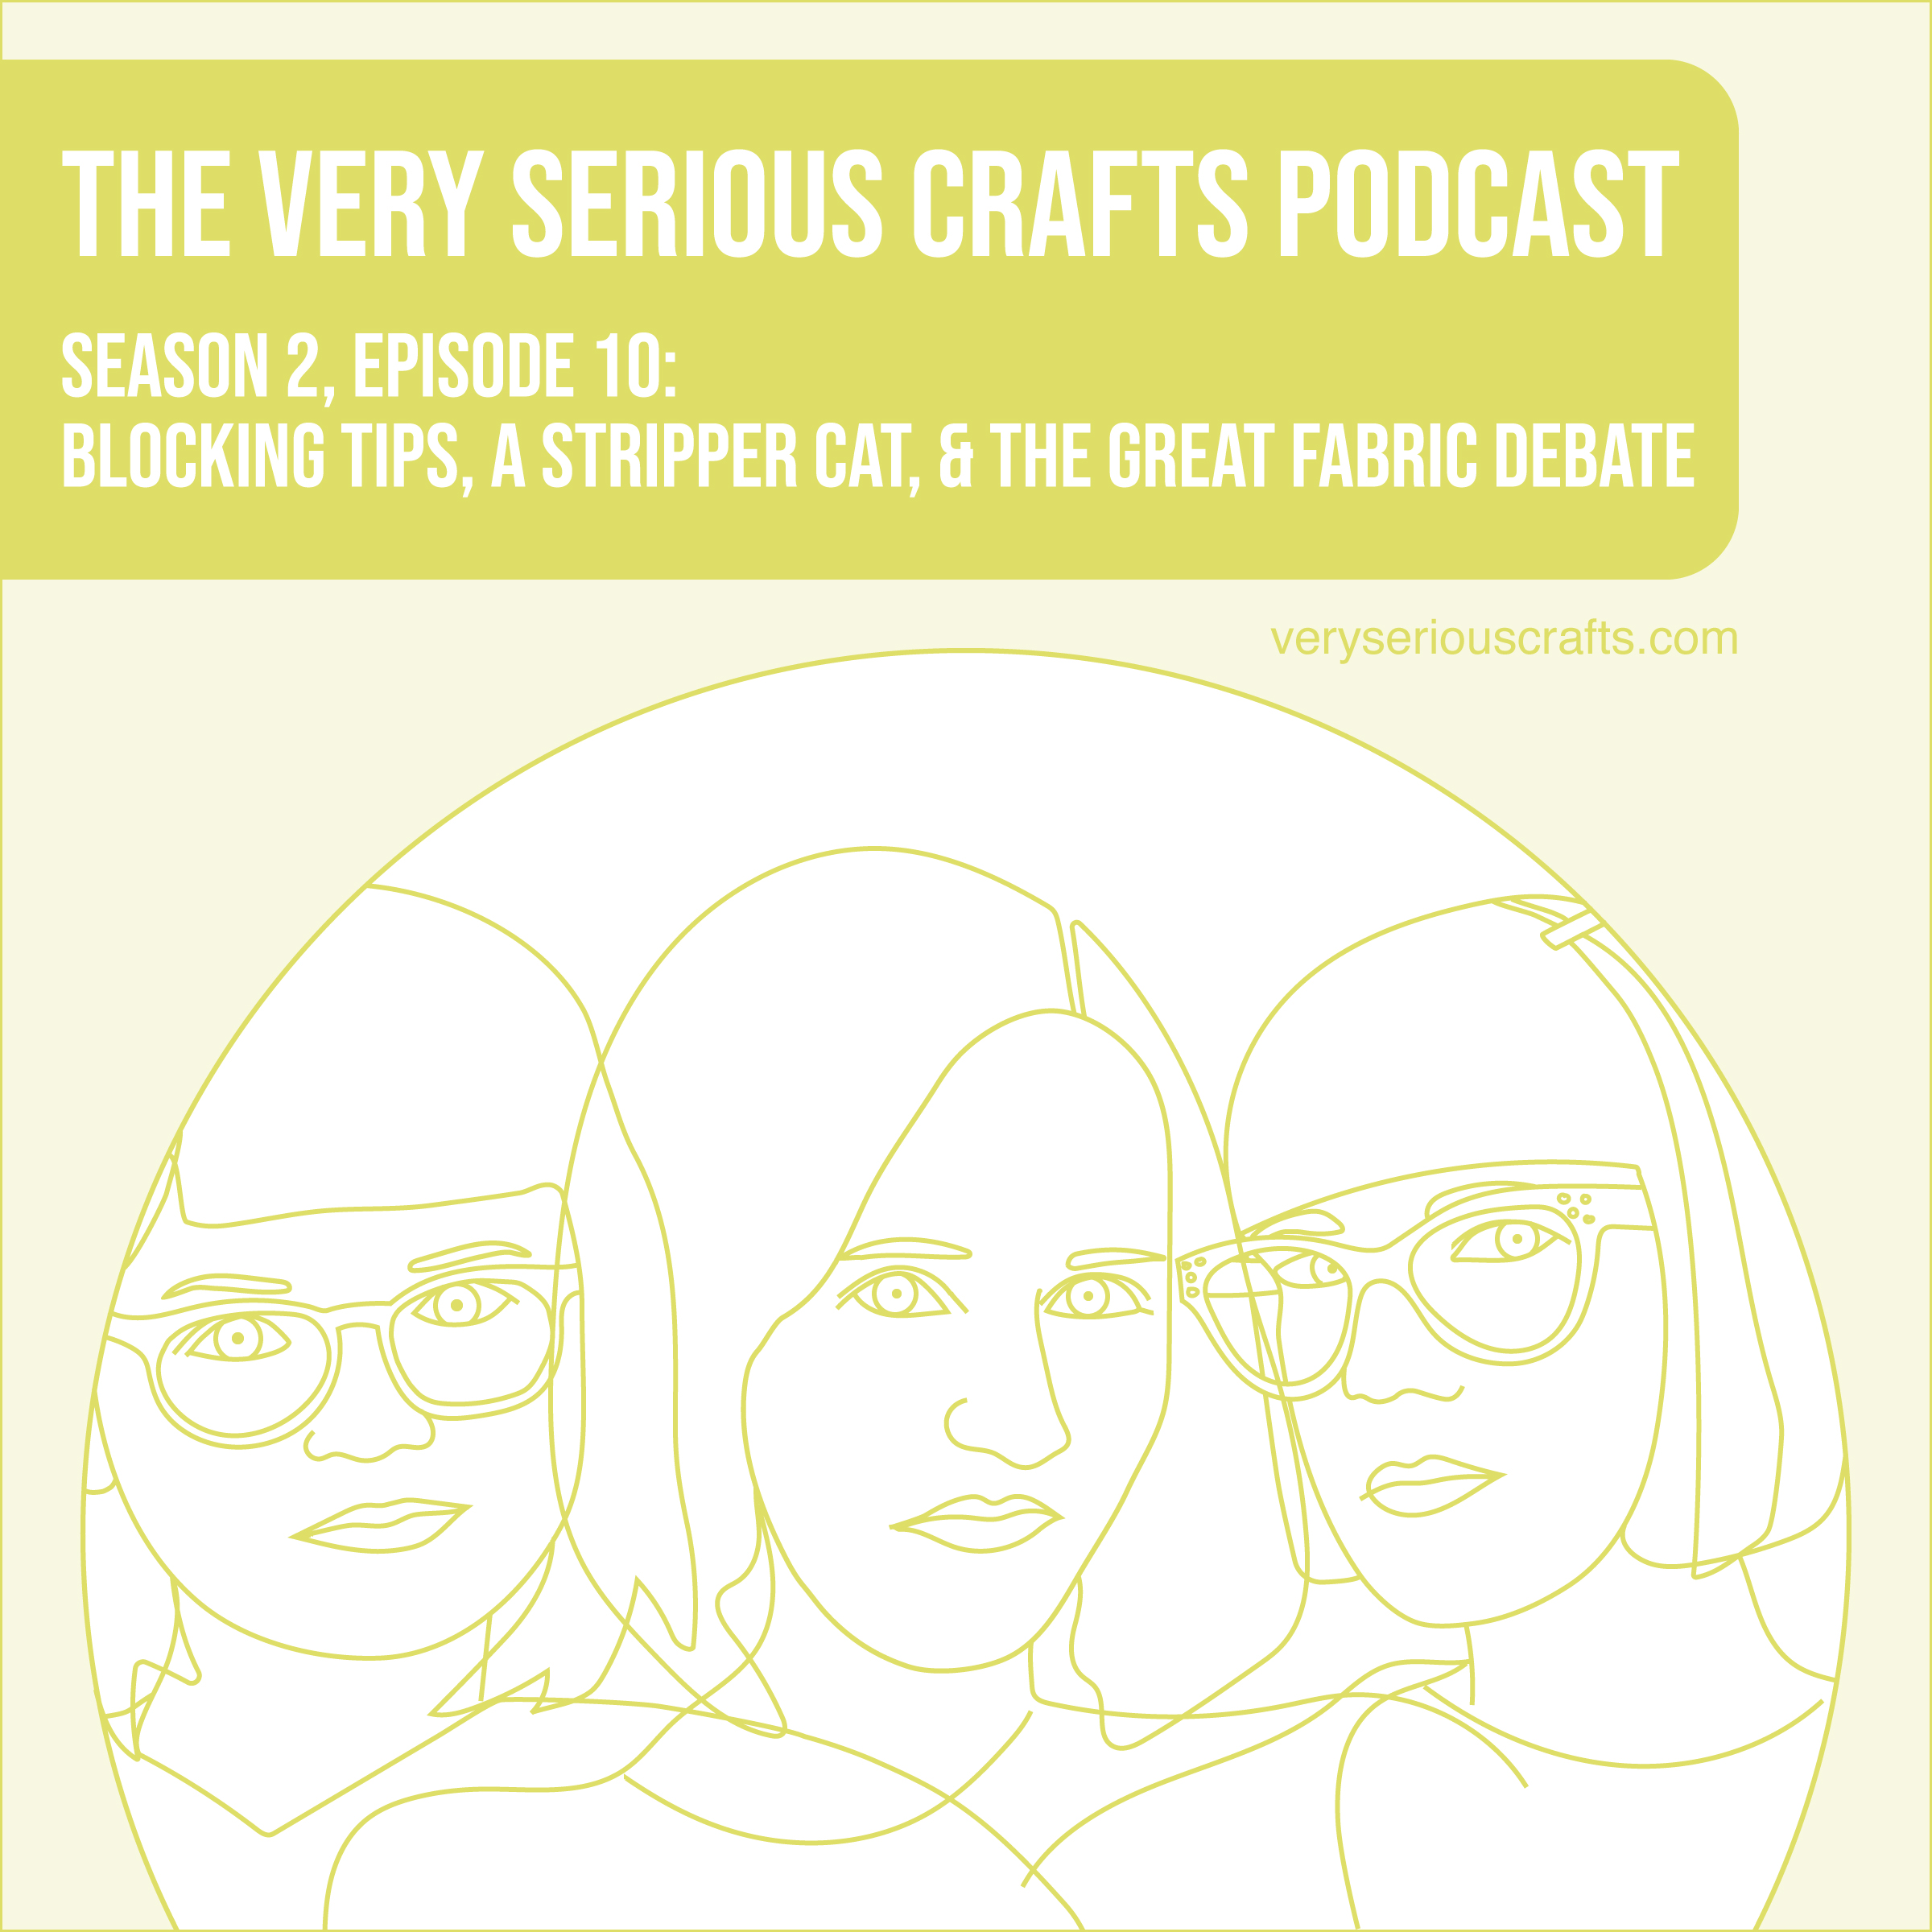 S2E10: Blocking Tips, a Stripper Cat, and the Great Fabric Debate